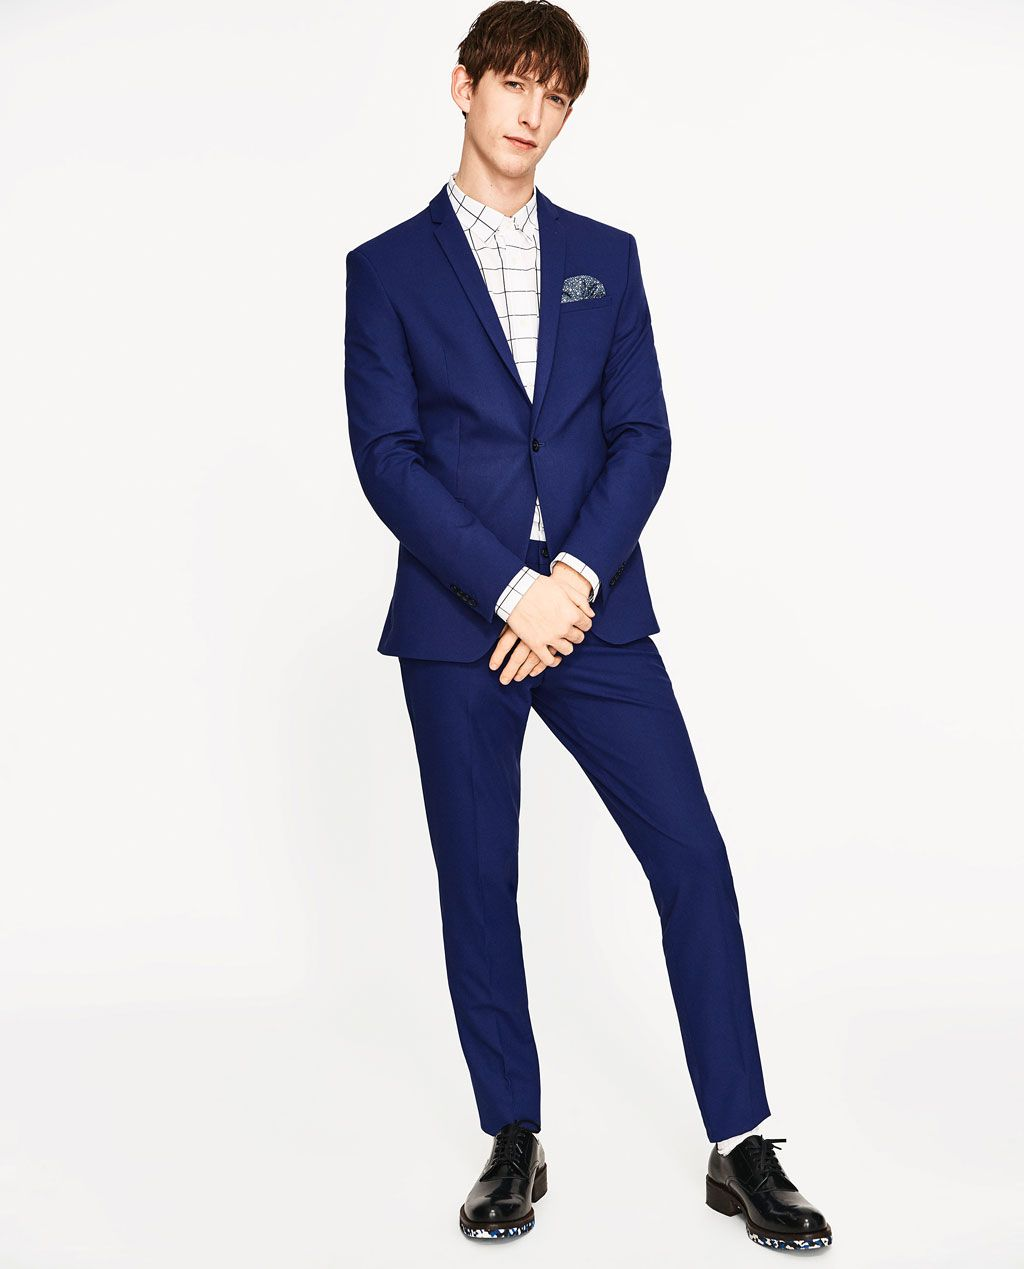 suits men new collection zara united states wedding